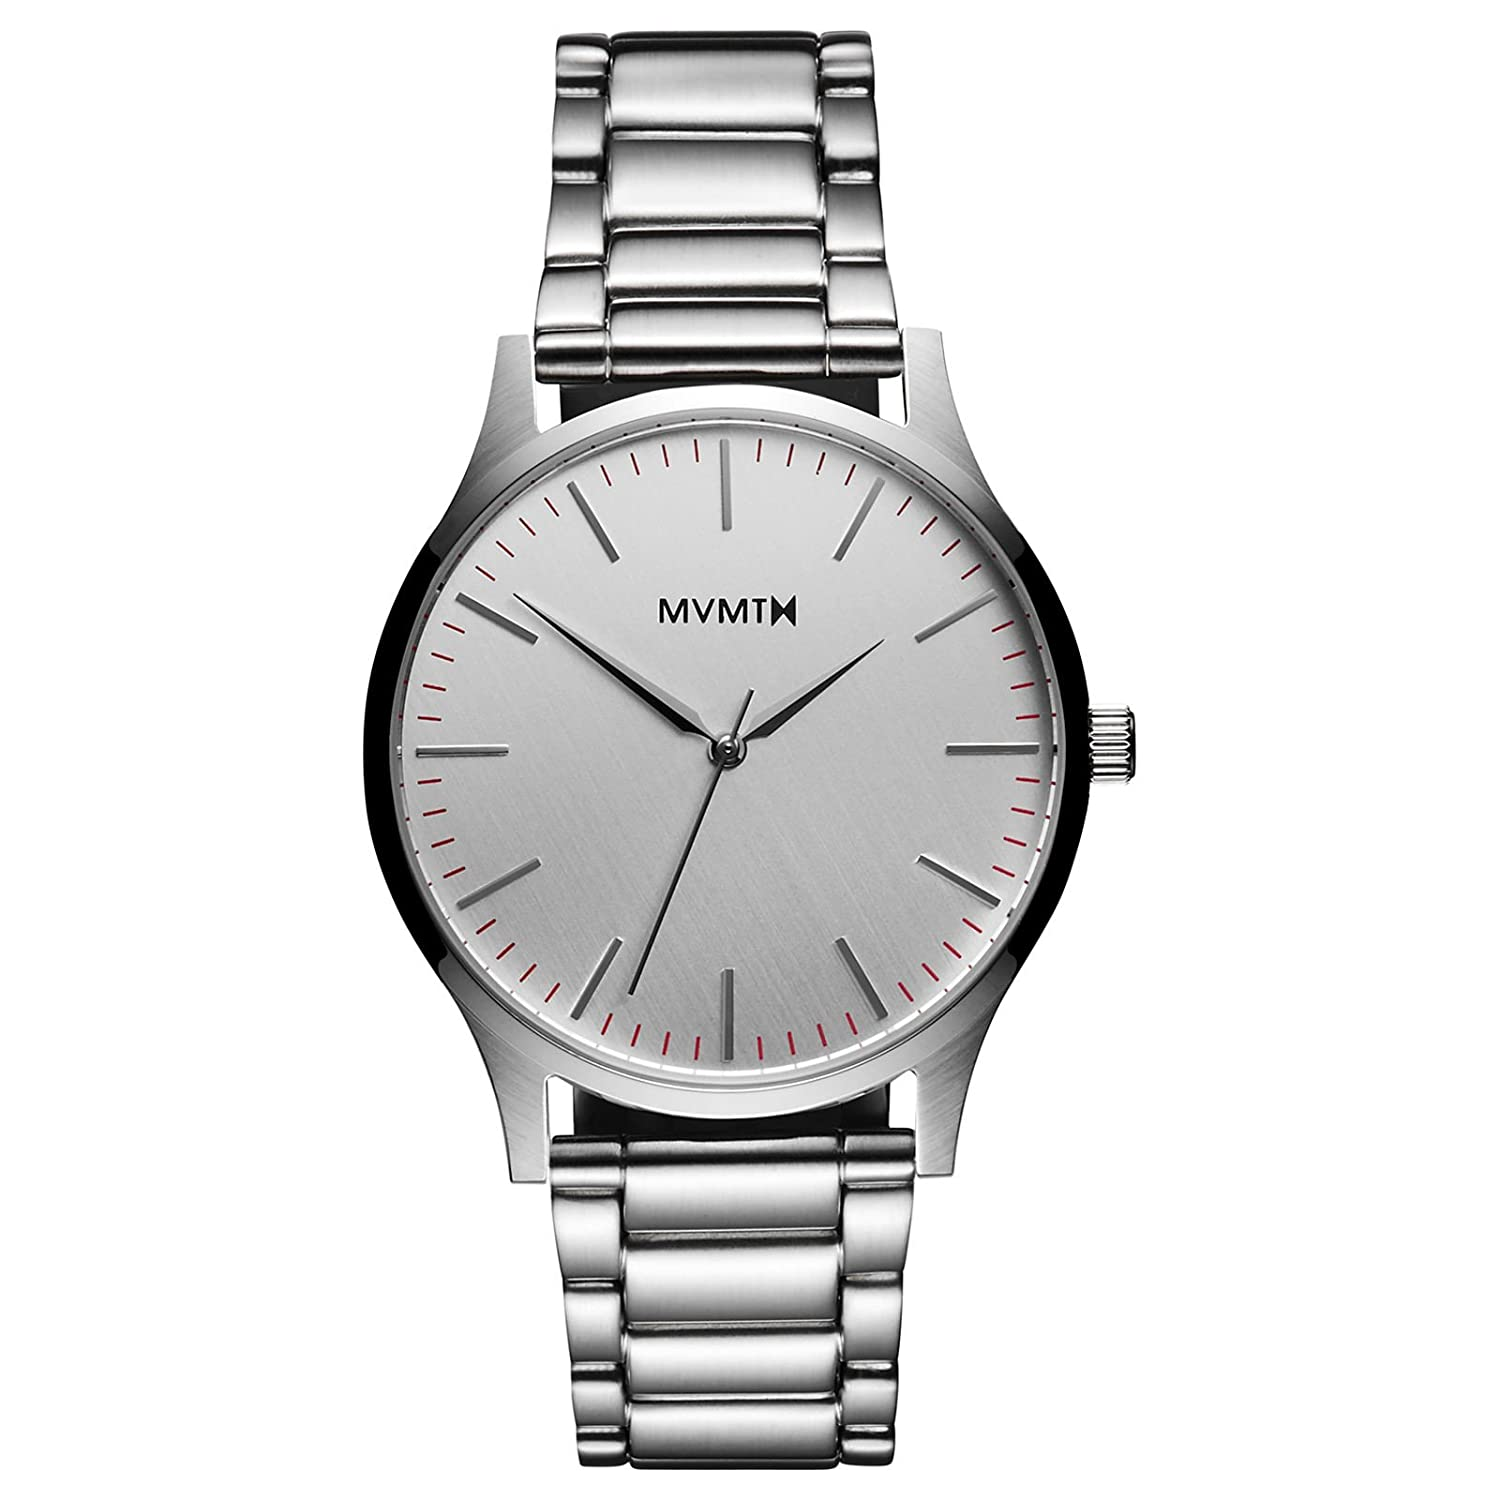 MVMT Watches 40 Series Herren Uhr Silver